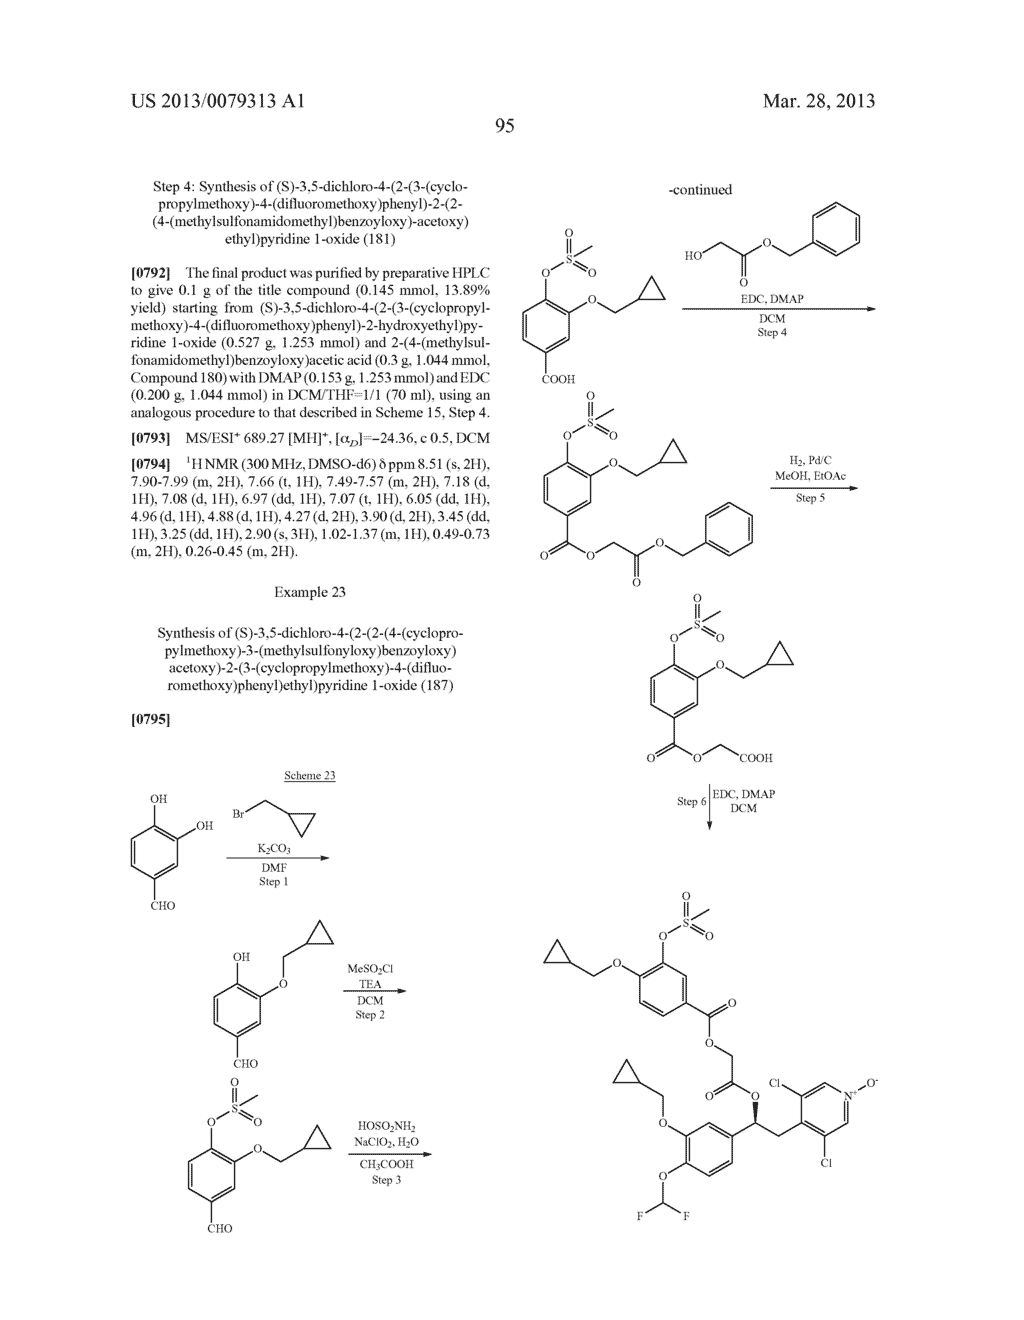 DERIVATIVES OF 1-PHENYL-2-PYRIDINYL ALKYL ALCOHOLS AS PHOSPHODIESTERASE     INHIBITORS - diagram, schematic, and image 96